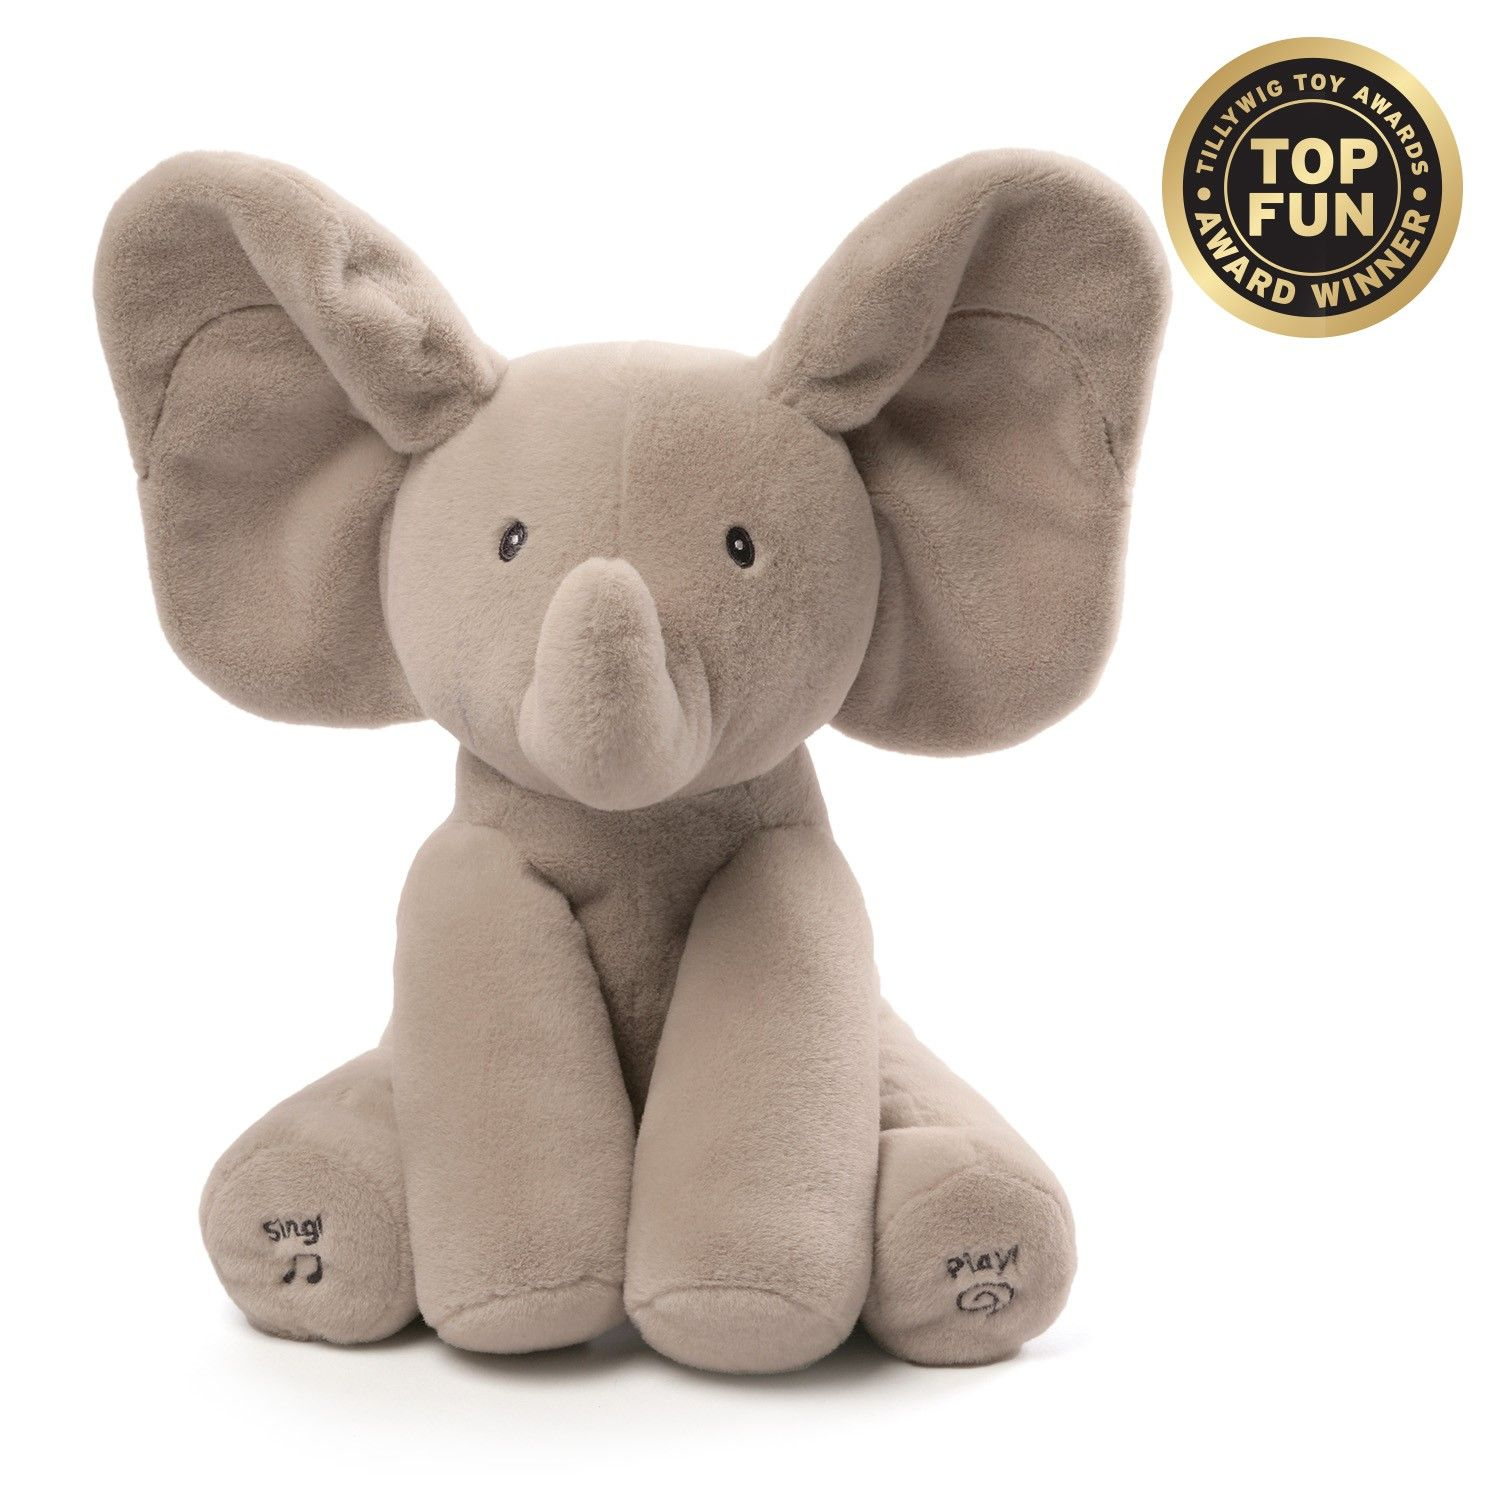 GUND Flappy the Elephant is an adorable singing animated plush